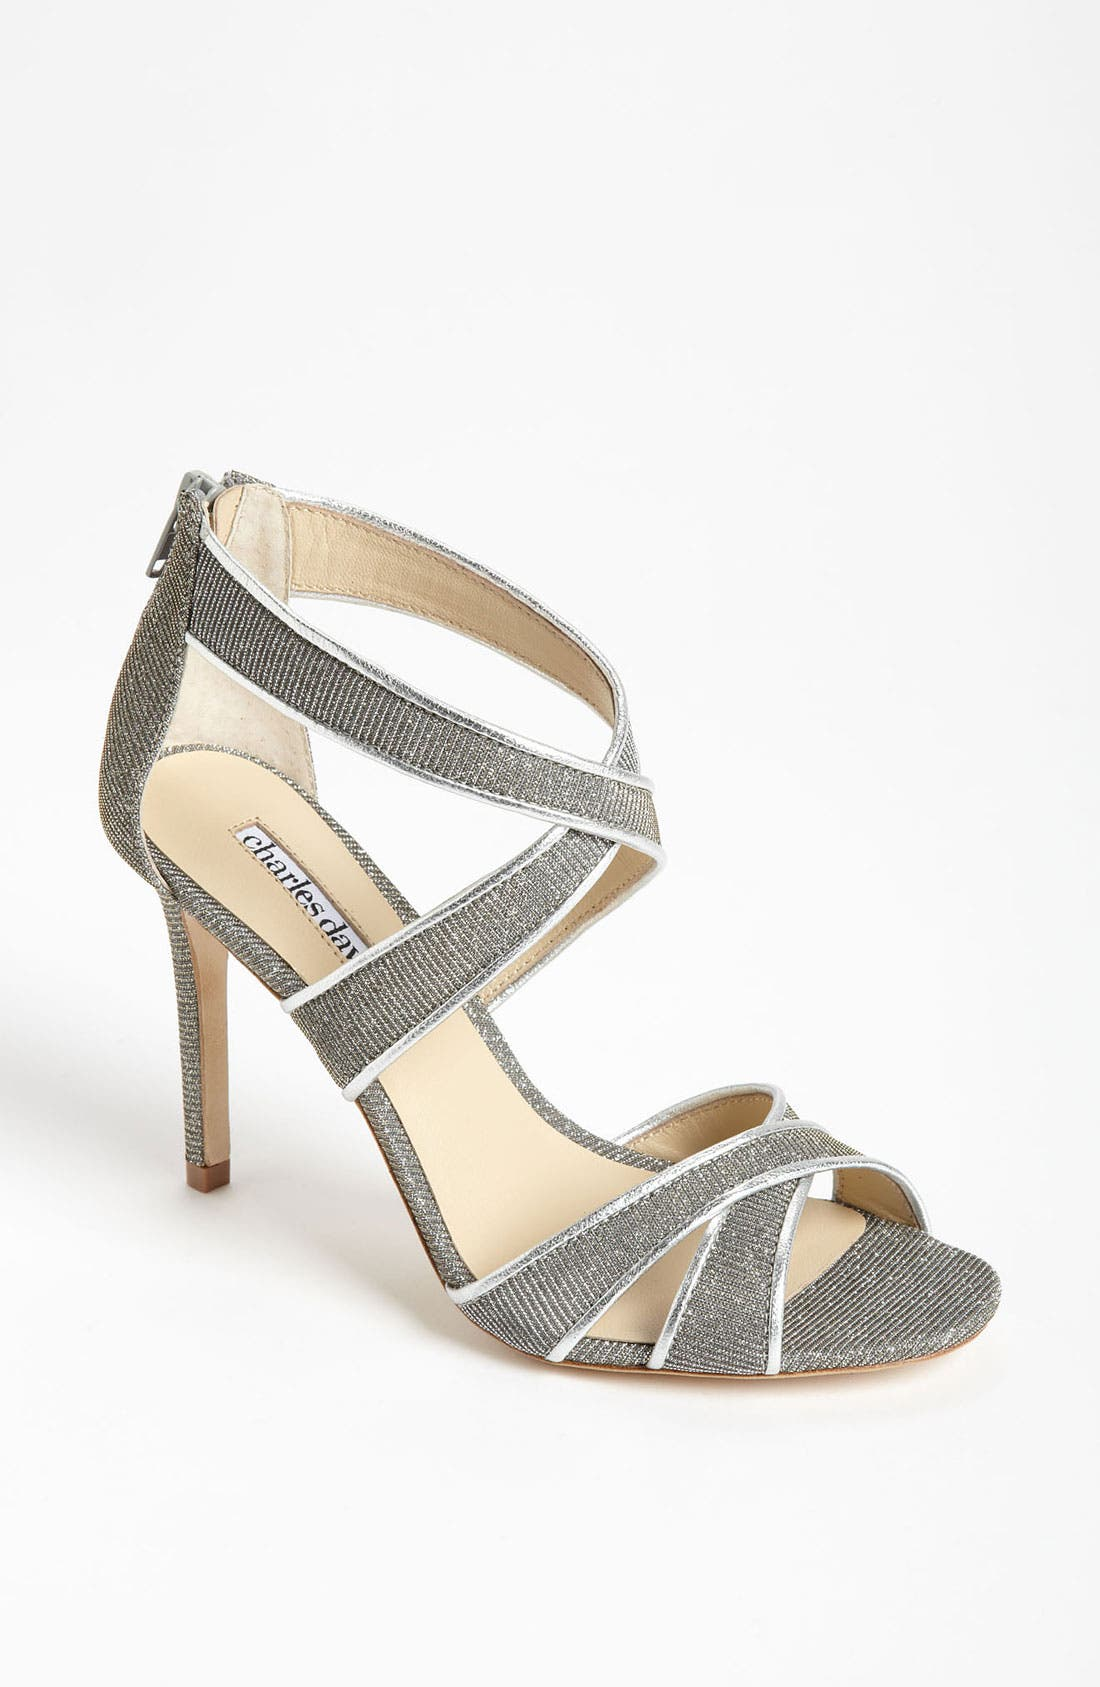 Alternate Image 1 Selected - Charles David 'Marcasite' Sandal